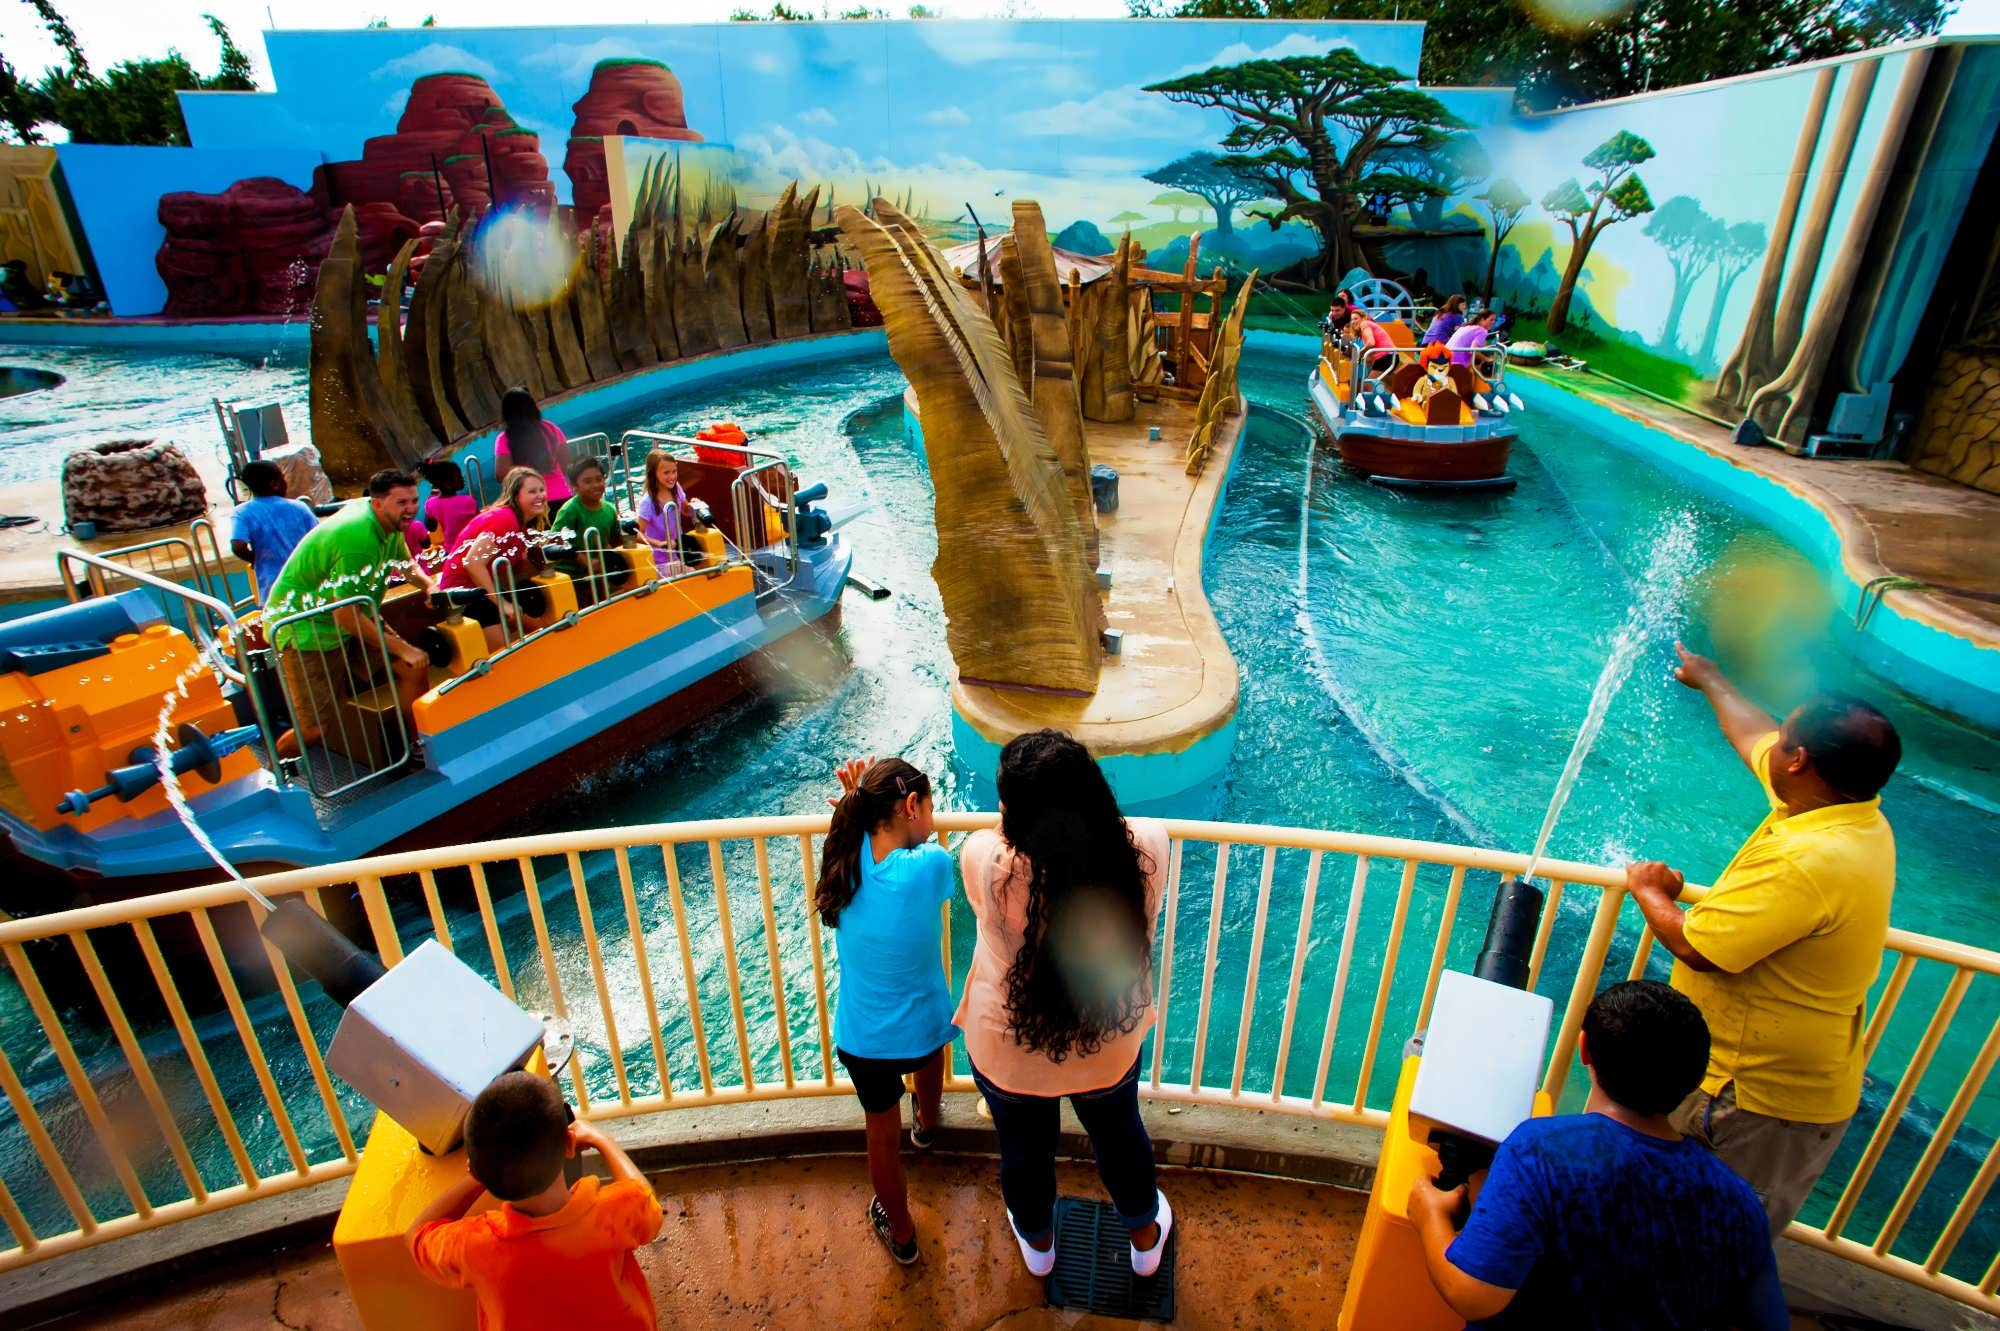 legoland florida's world of chima now open offers guests